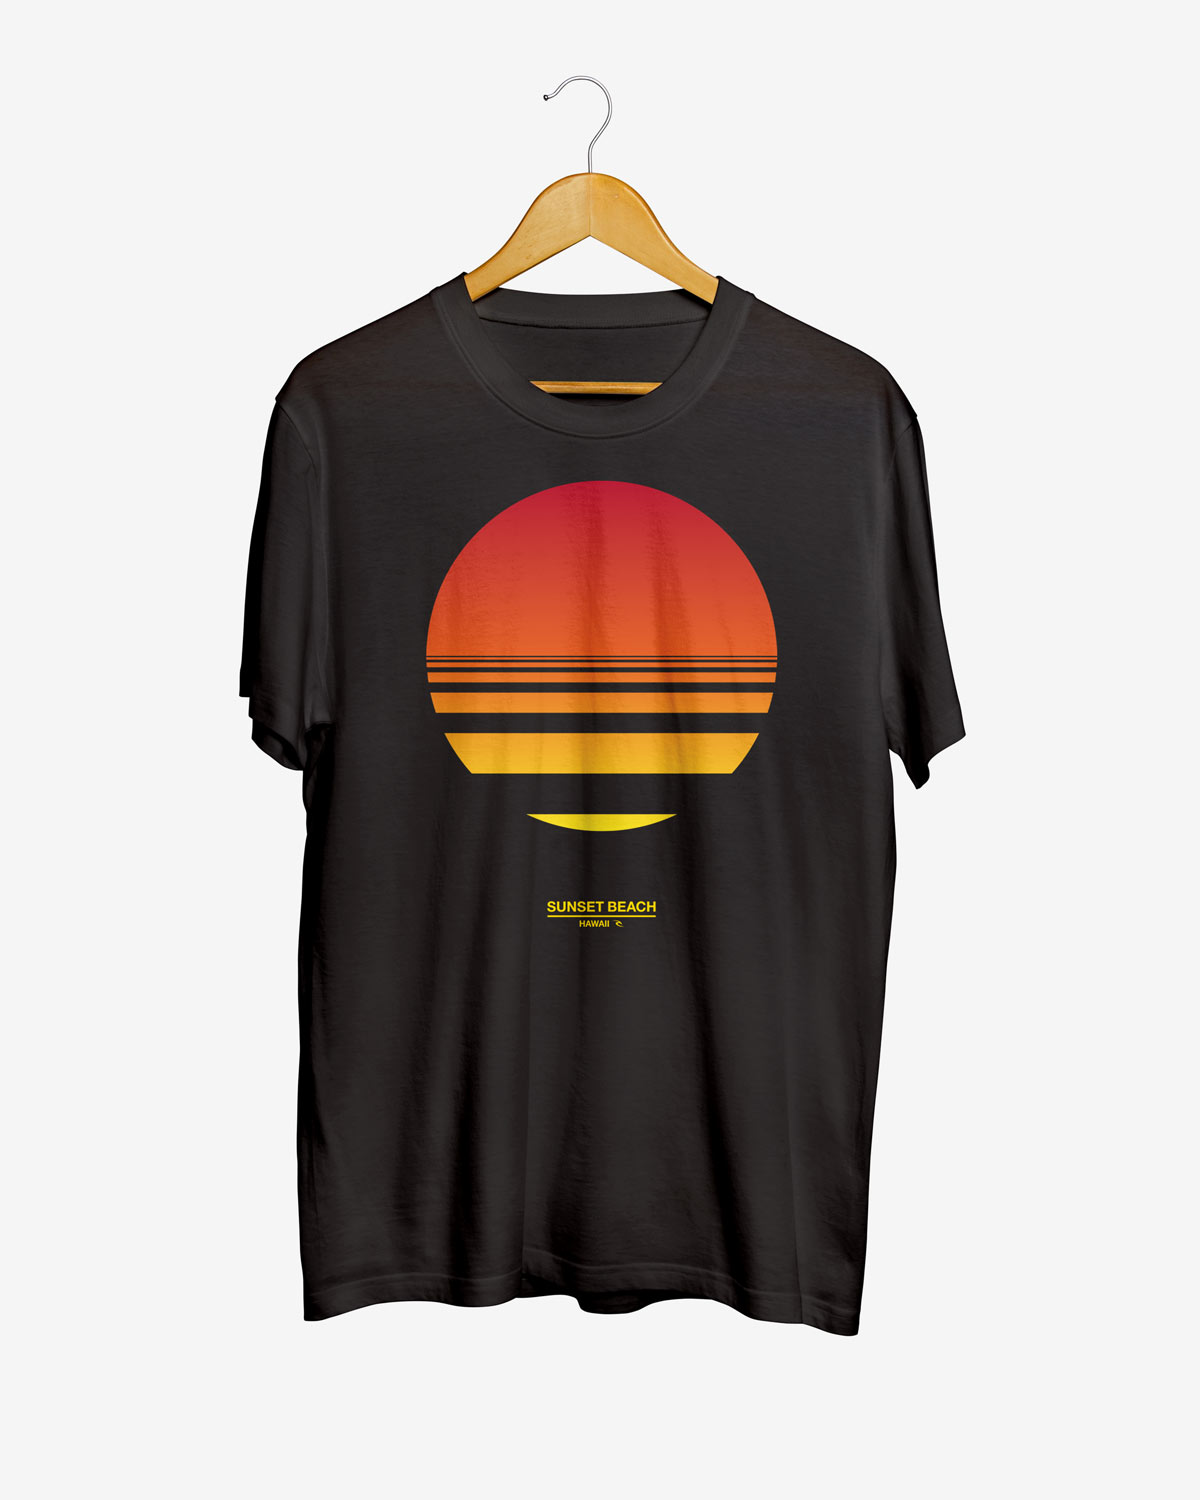 Rip Curl limited edition sunset-beach t-shirt